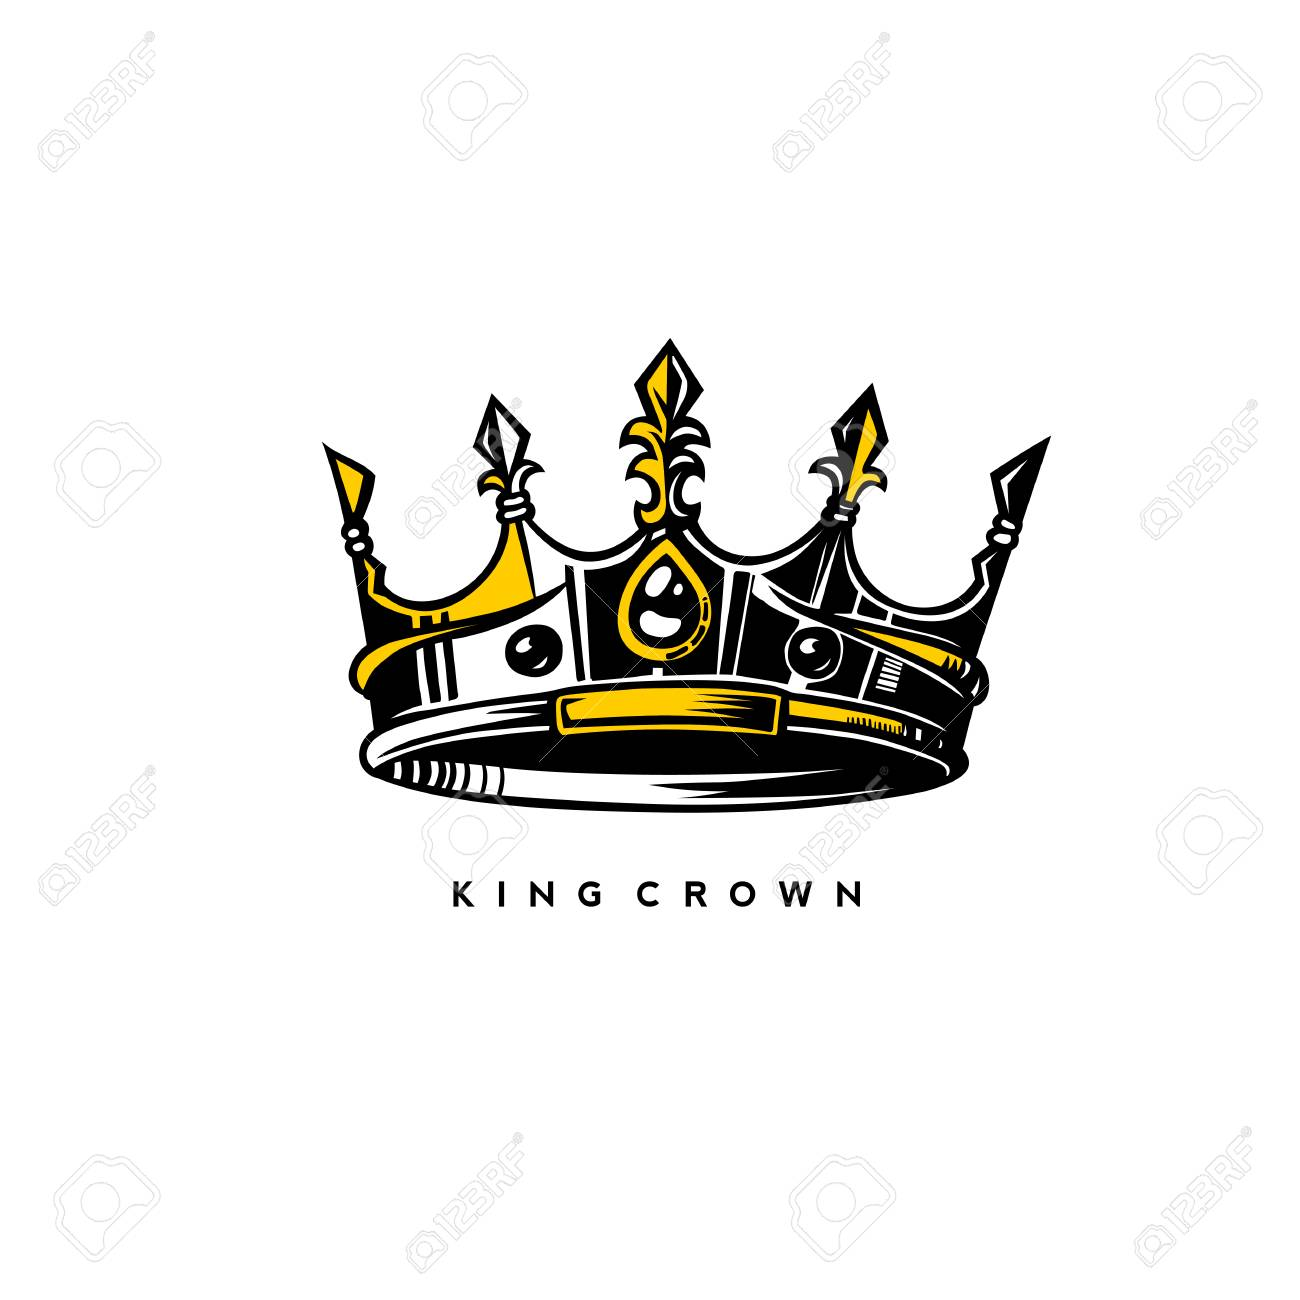 silver and gold king crown logo on white background with typography